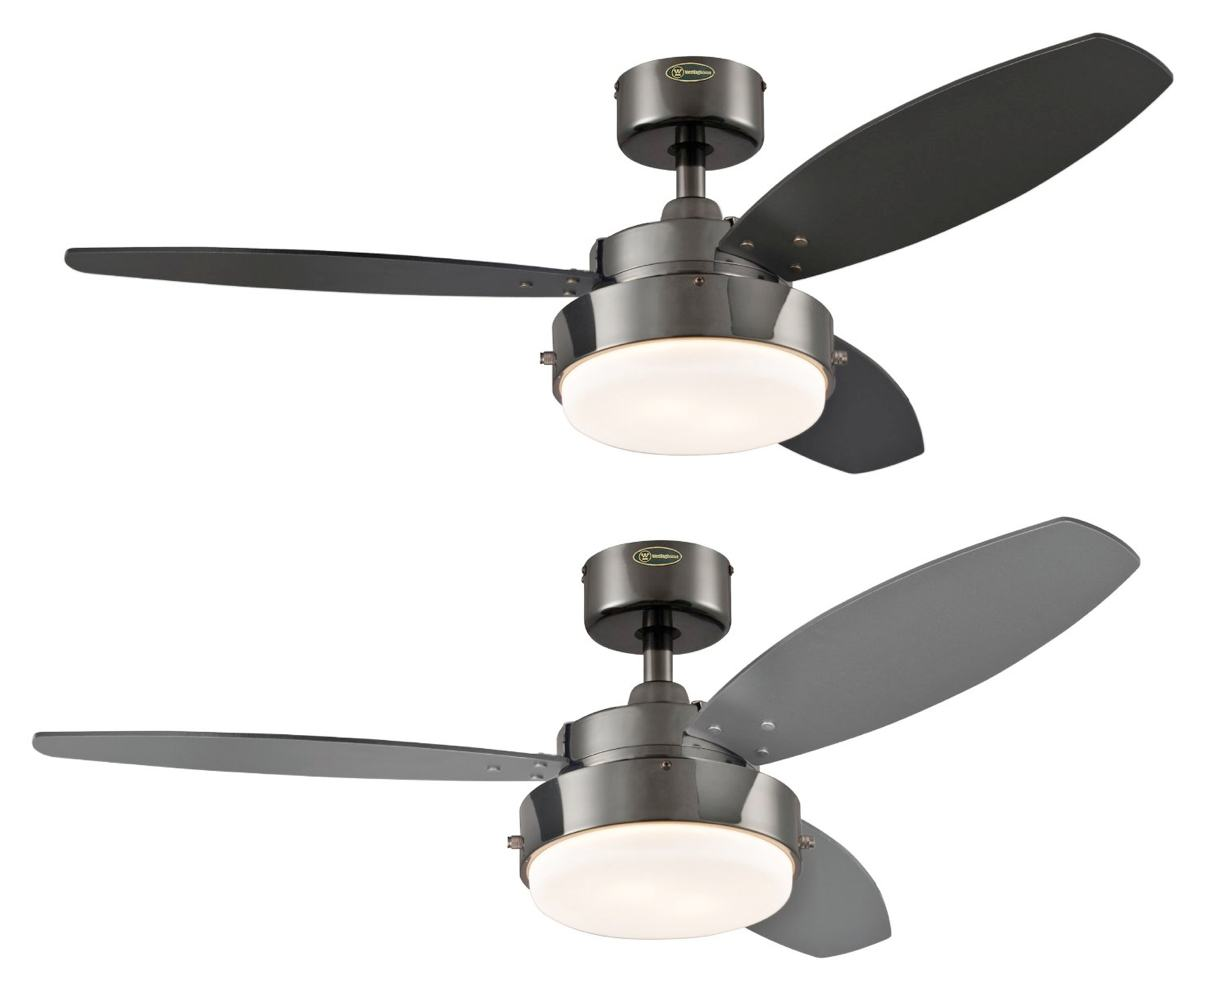 Westinghouse 2 Light 42 Reversible 3 Blade Indoor Ceiling FAN GUN Metal